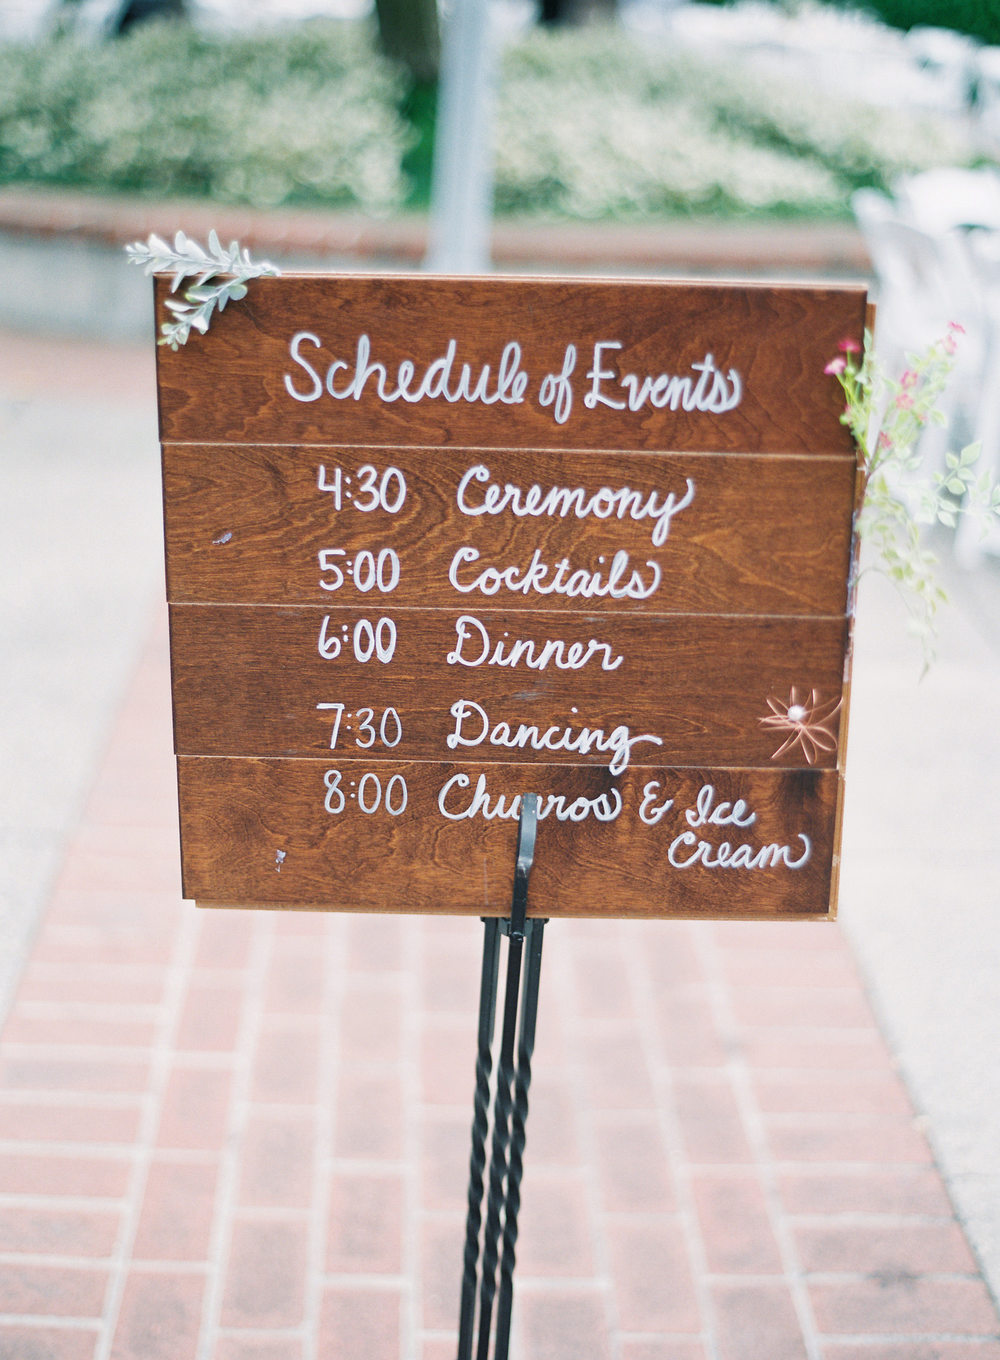 boho-inspired-wedding-at-piedmont-community-center-43.jpg